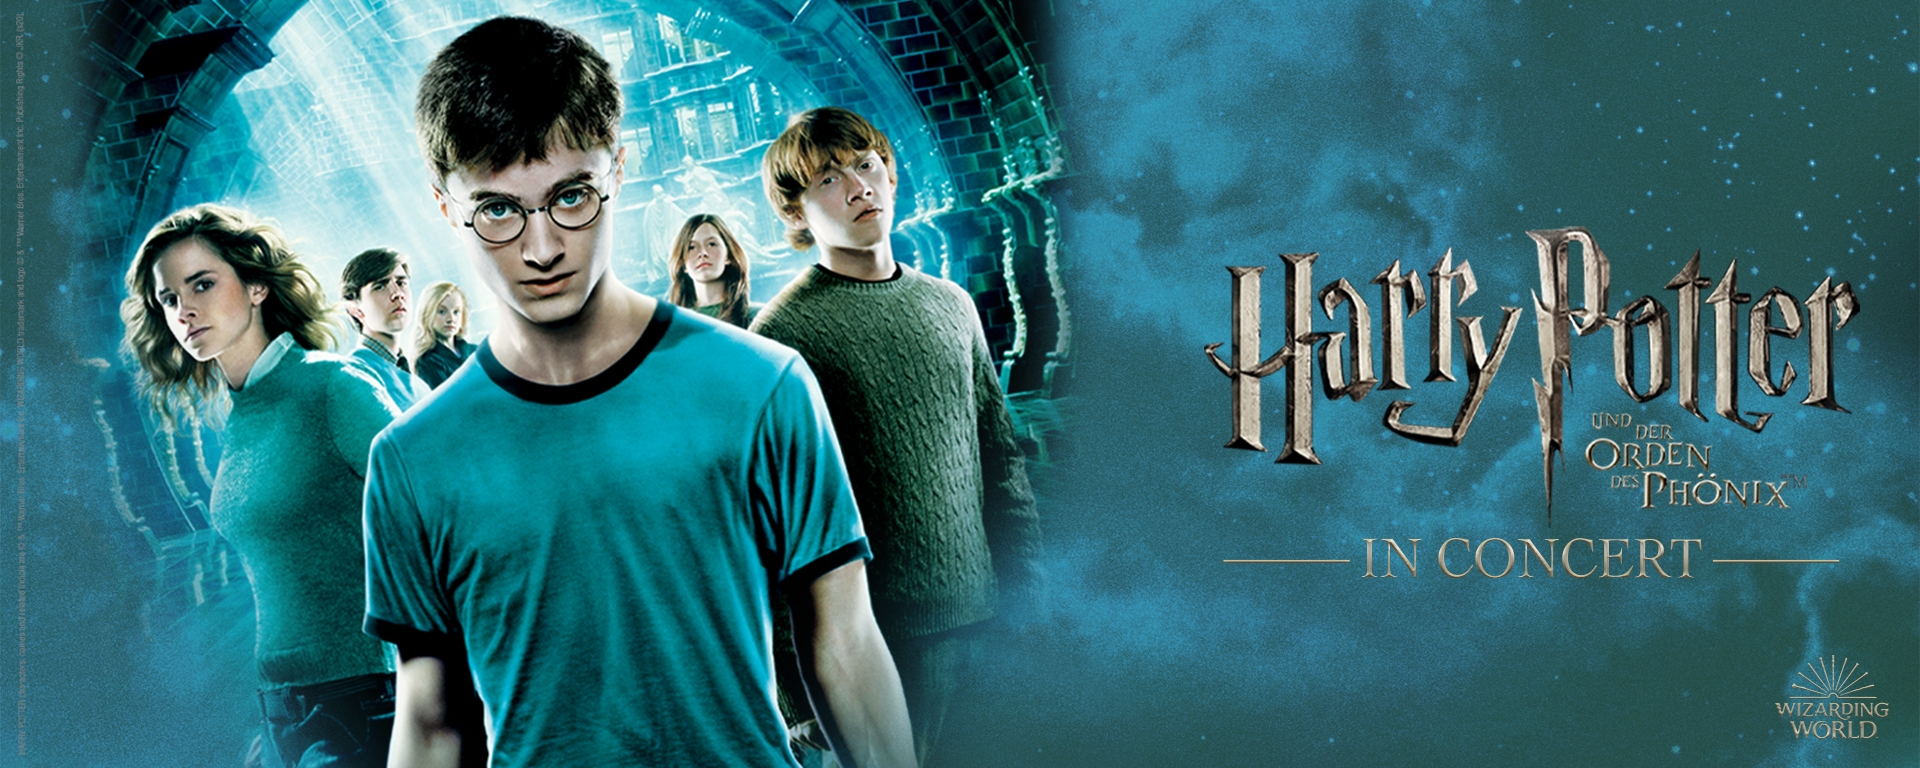 Harry Potter and the Order of the Phoenix – in Concert